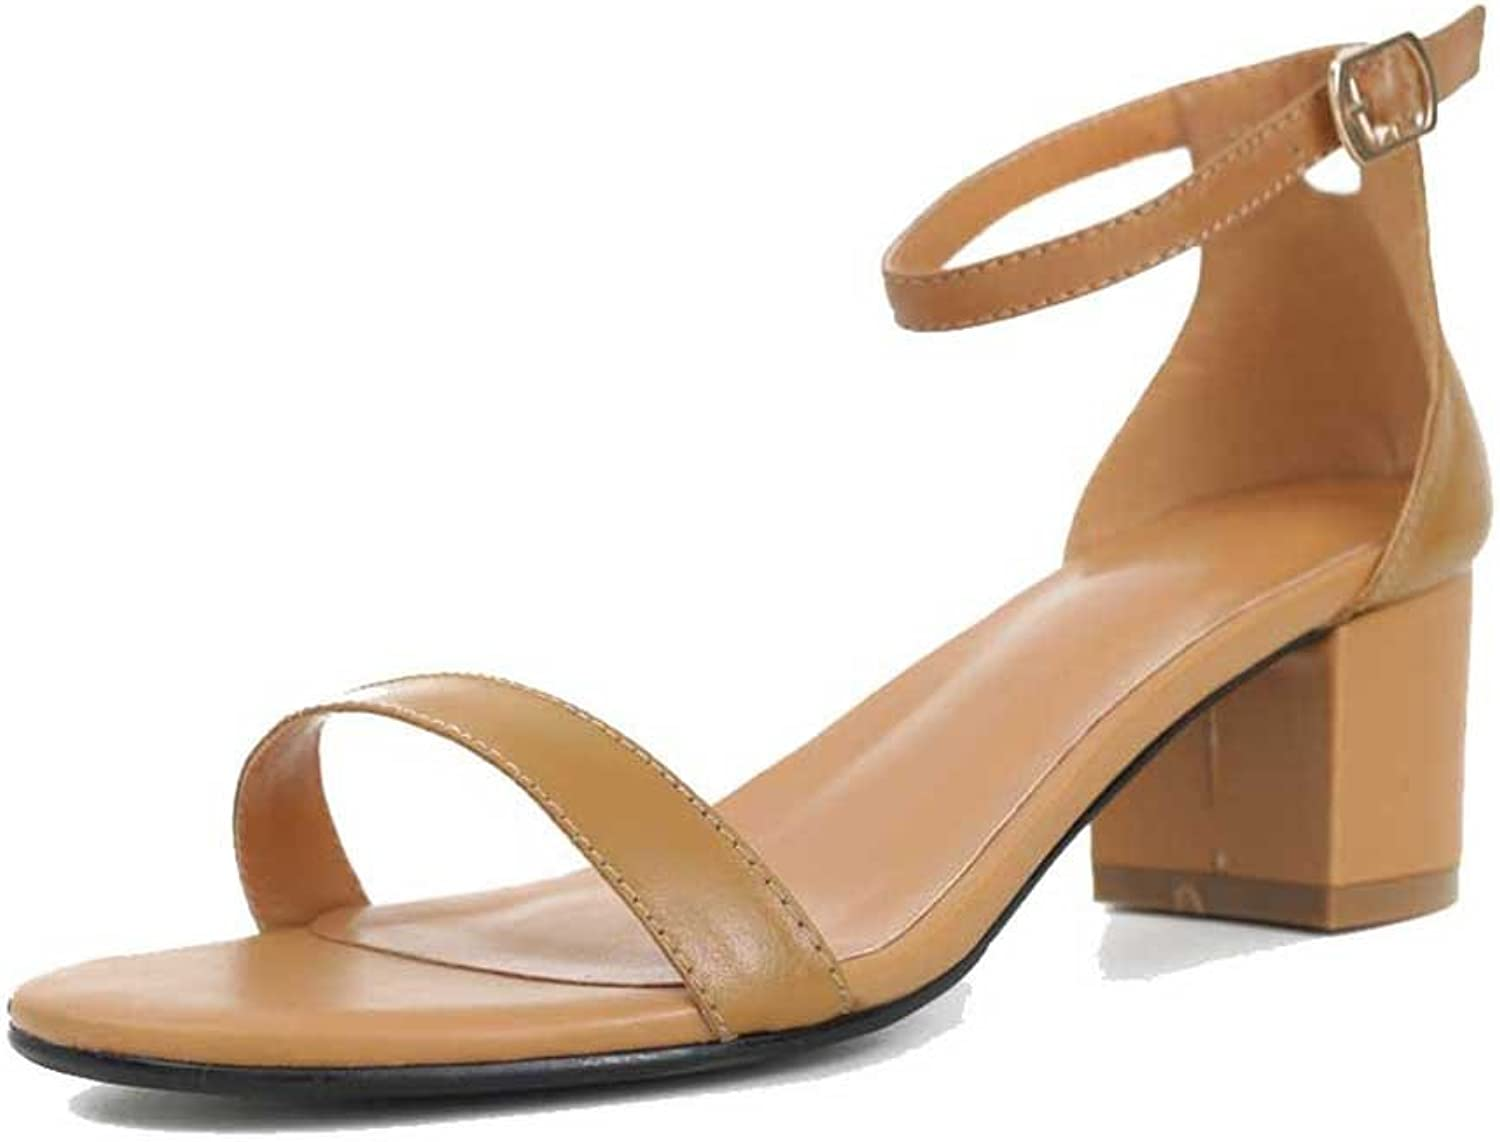 A-BUYBEA Women's 1.57  Low-Heeled Leather Sandal shoes Black White Brown Size 4.5-7.5